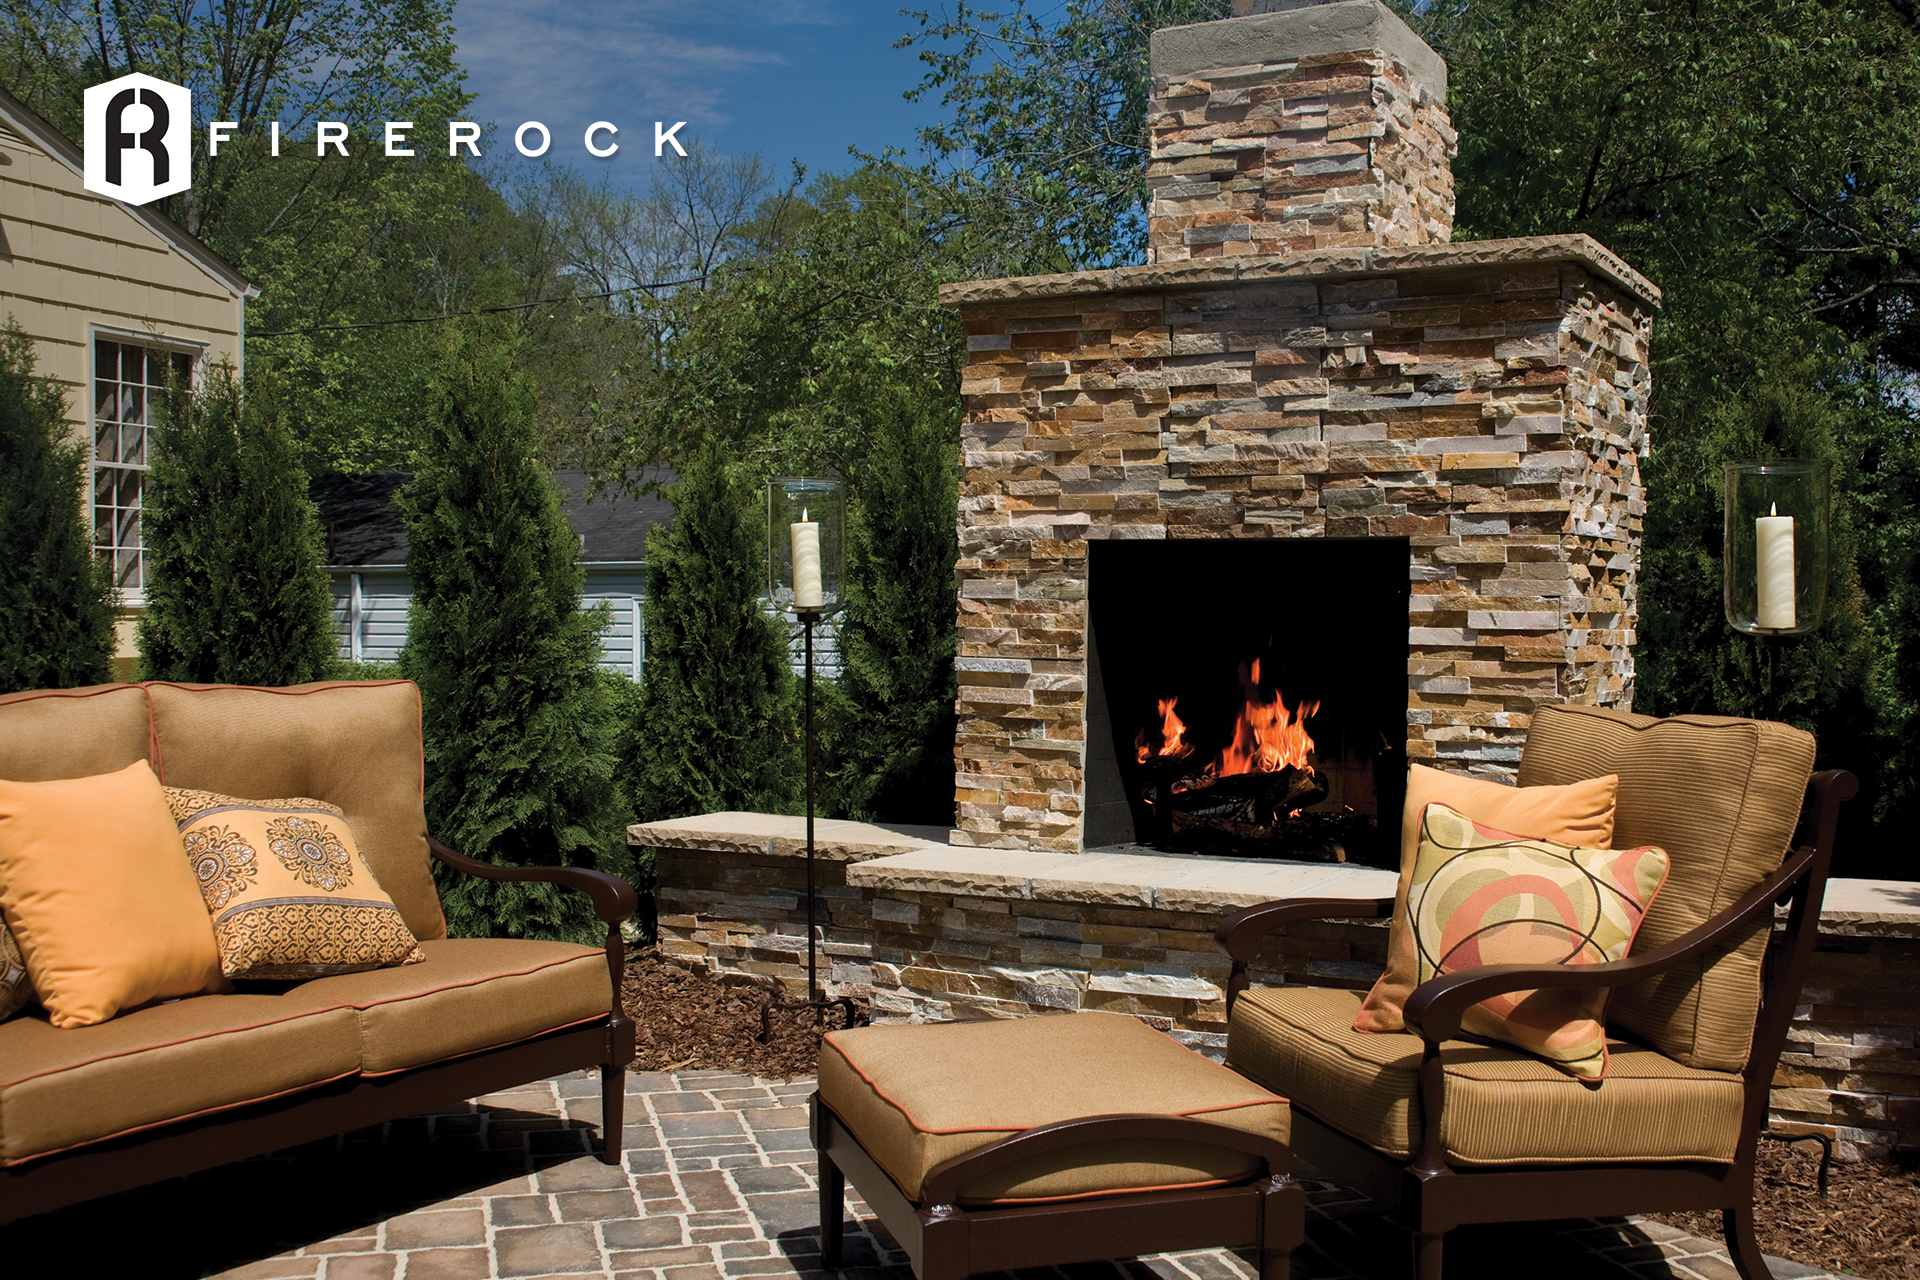 Outdoor Fireplaces | brick.com on Brick Outdoor Fireplace Ideas id=67874